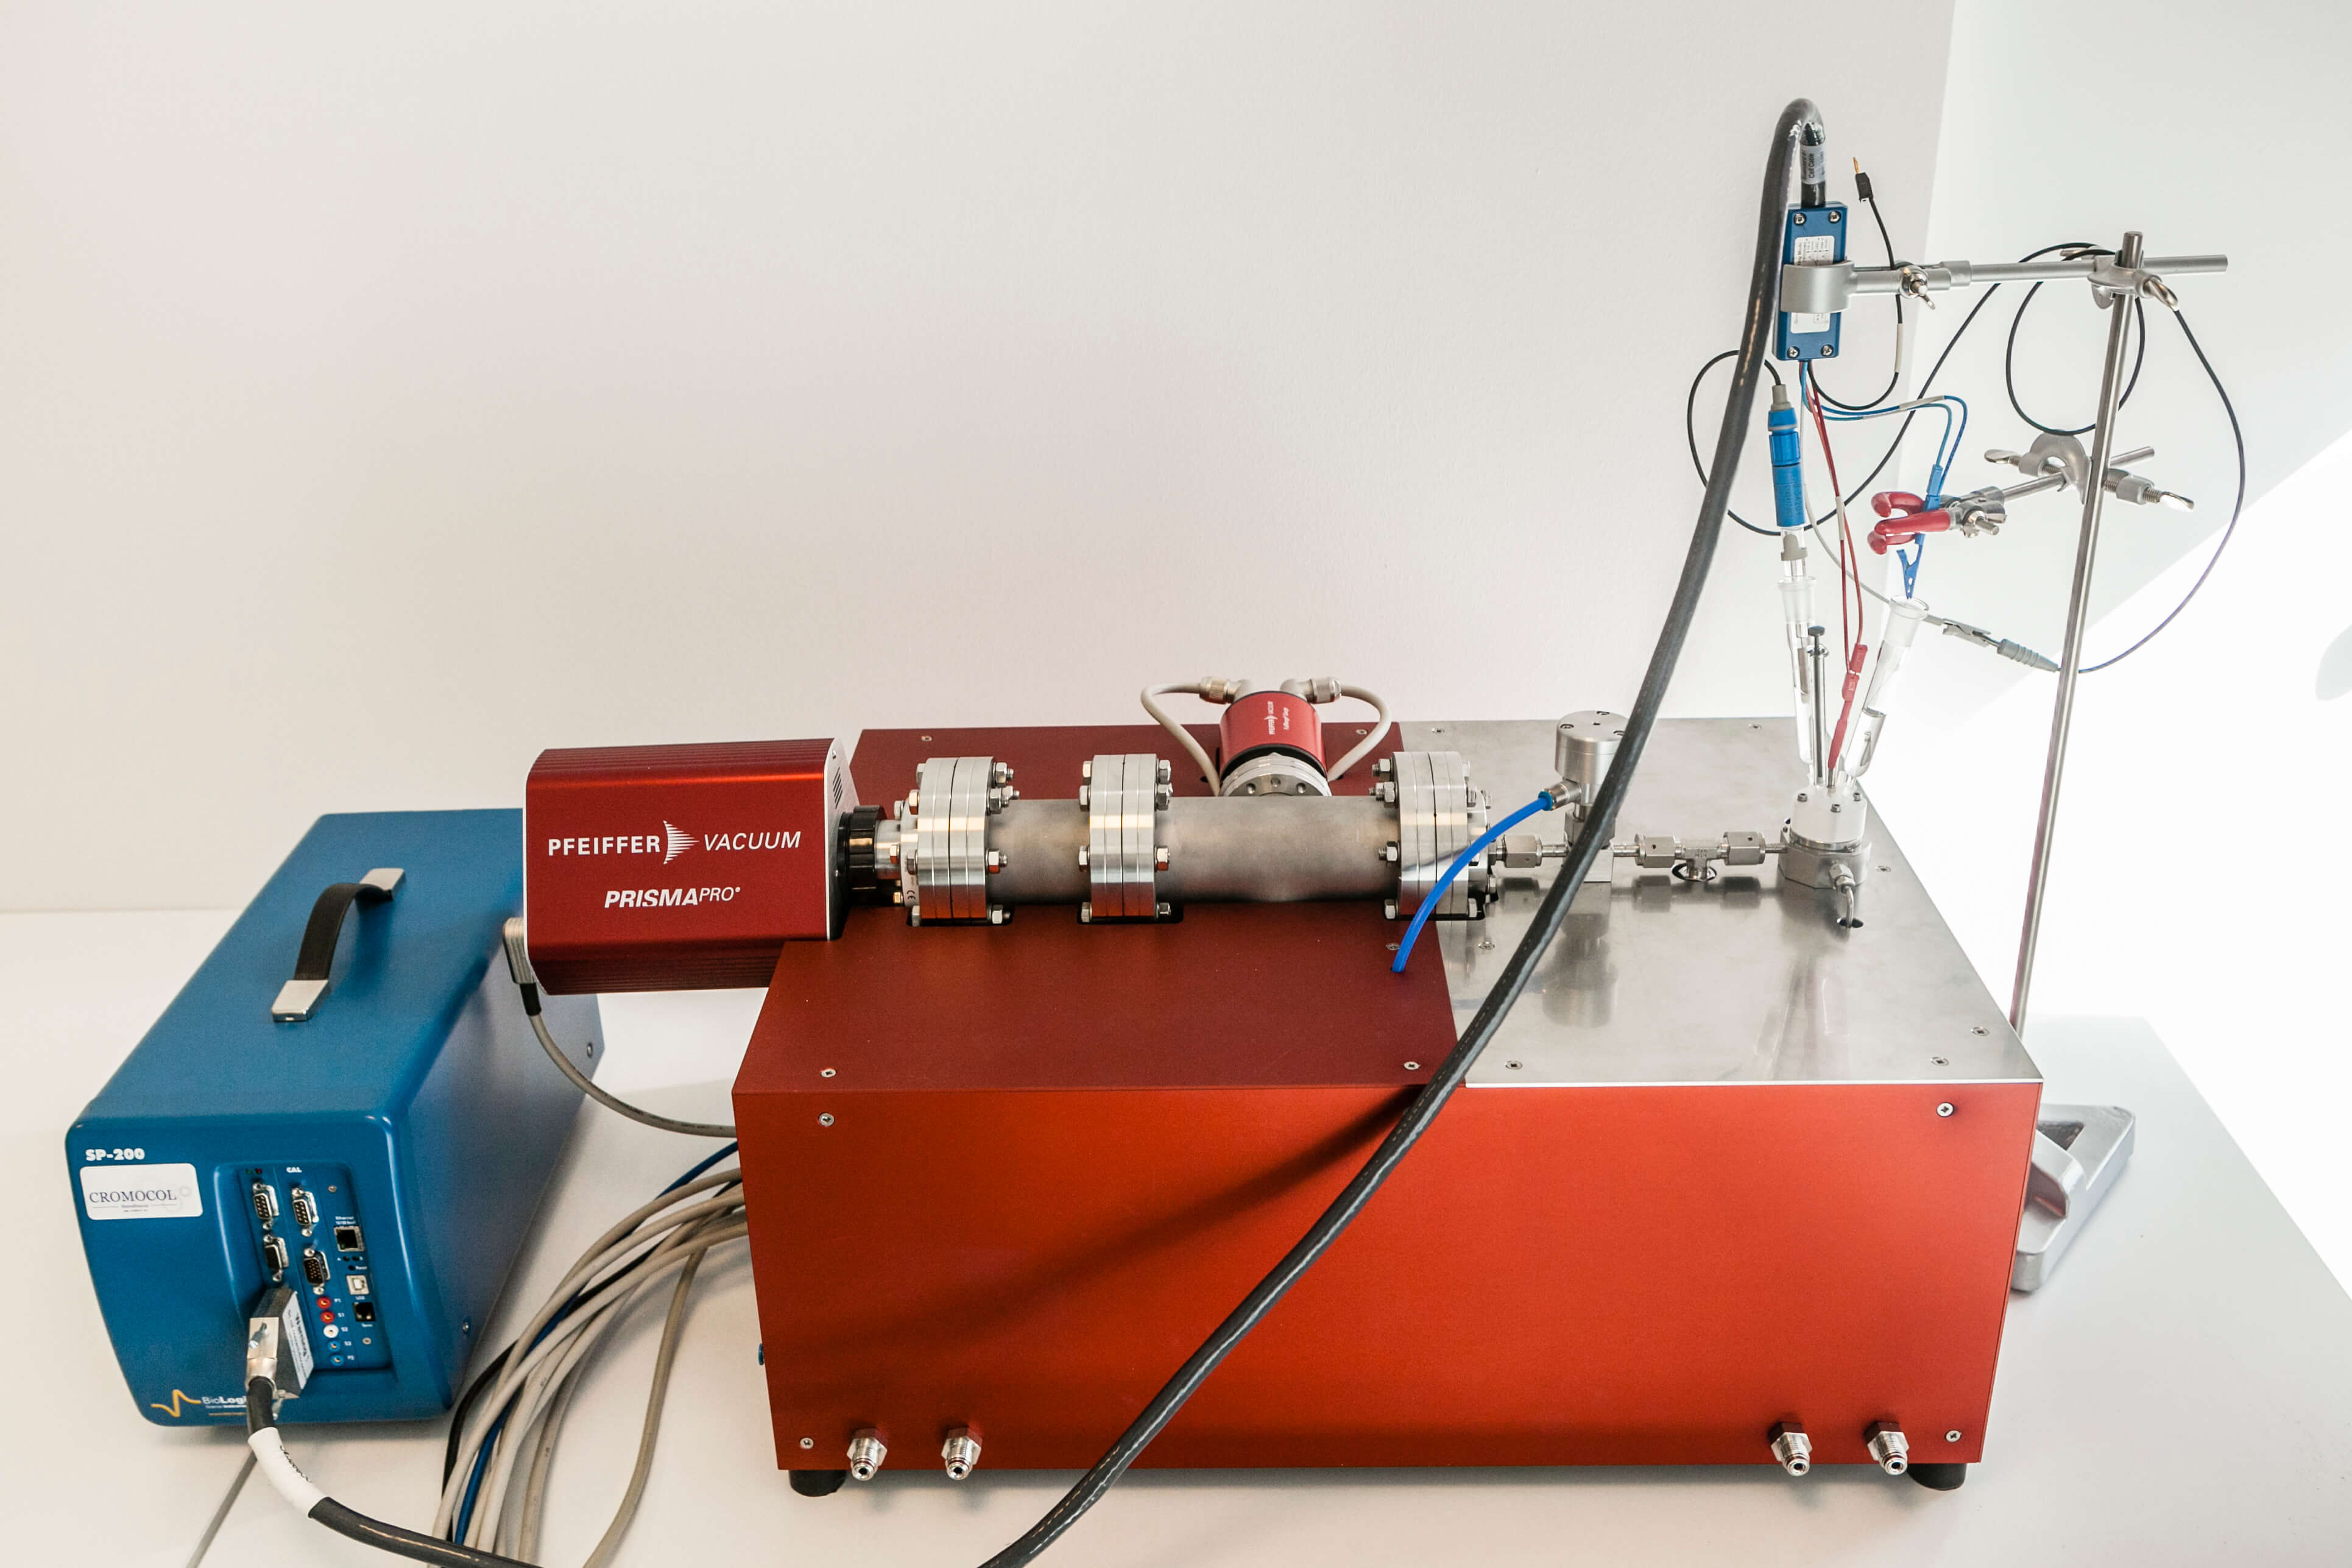 Complete system featuring potentiostat, embedded mass spectrometer, glassware, reference electrode